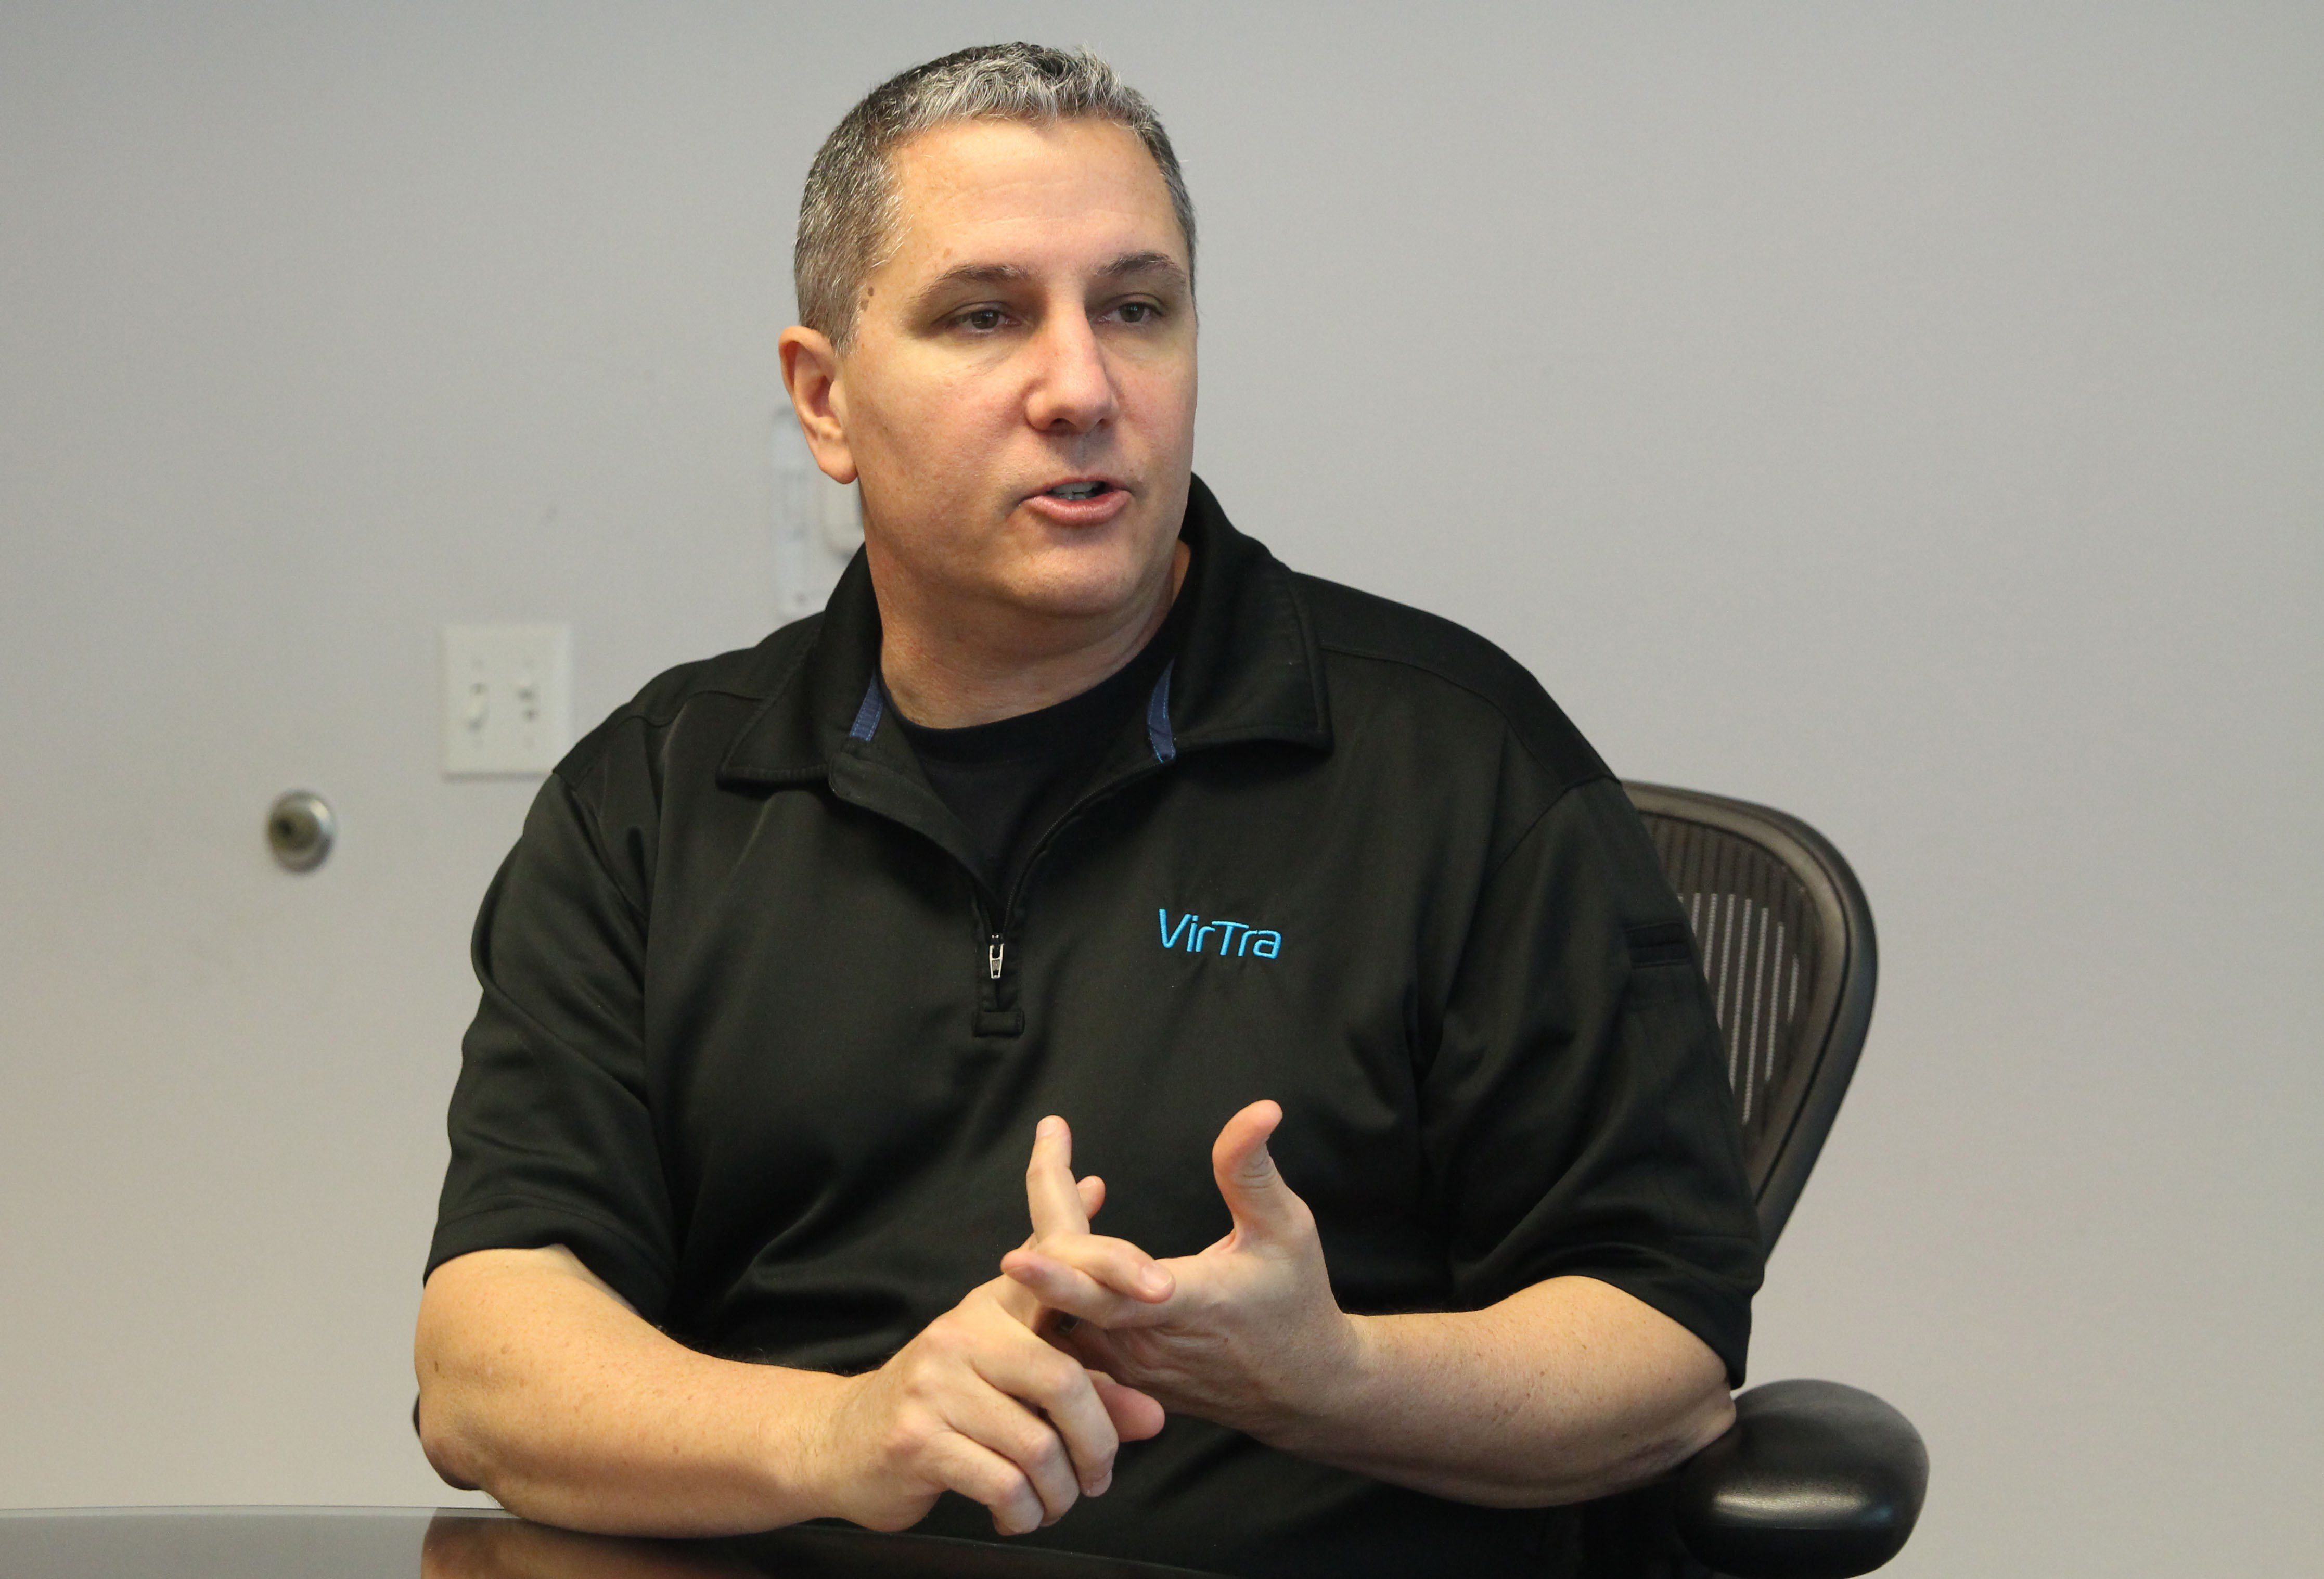 Scott Dilullo, federal law enforcement business development manager at VirTra, said competitors are just now starting to incorporate multiple screens. (Source: Megan Bridgeman/Cronkite News)